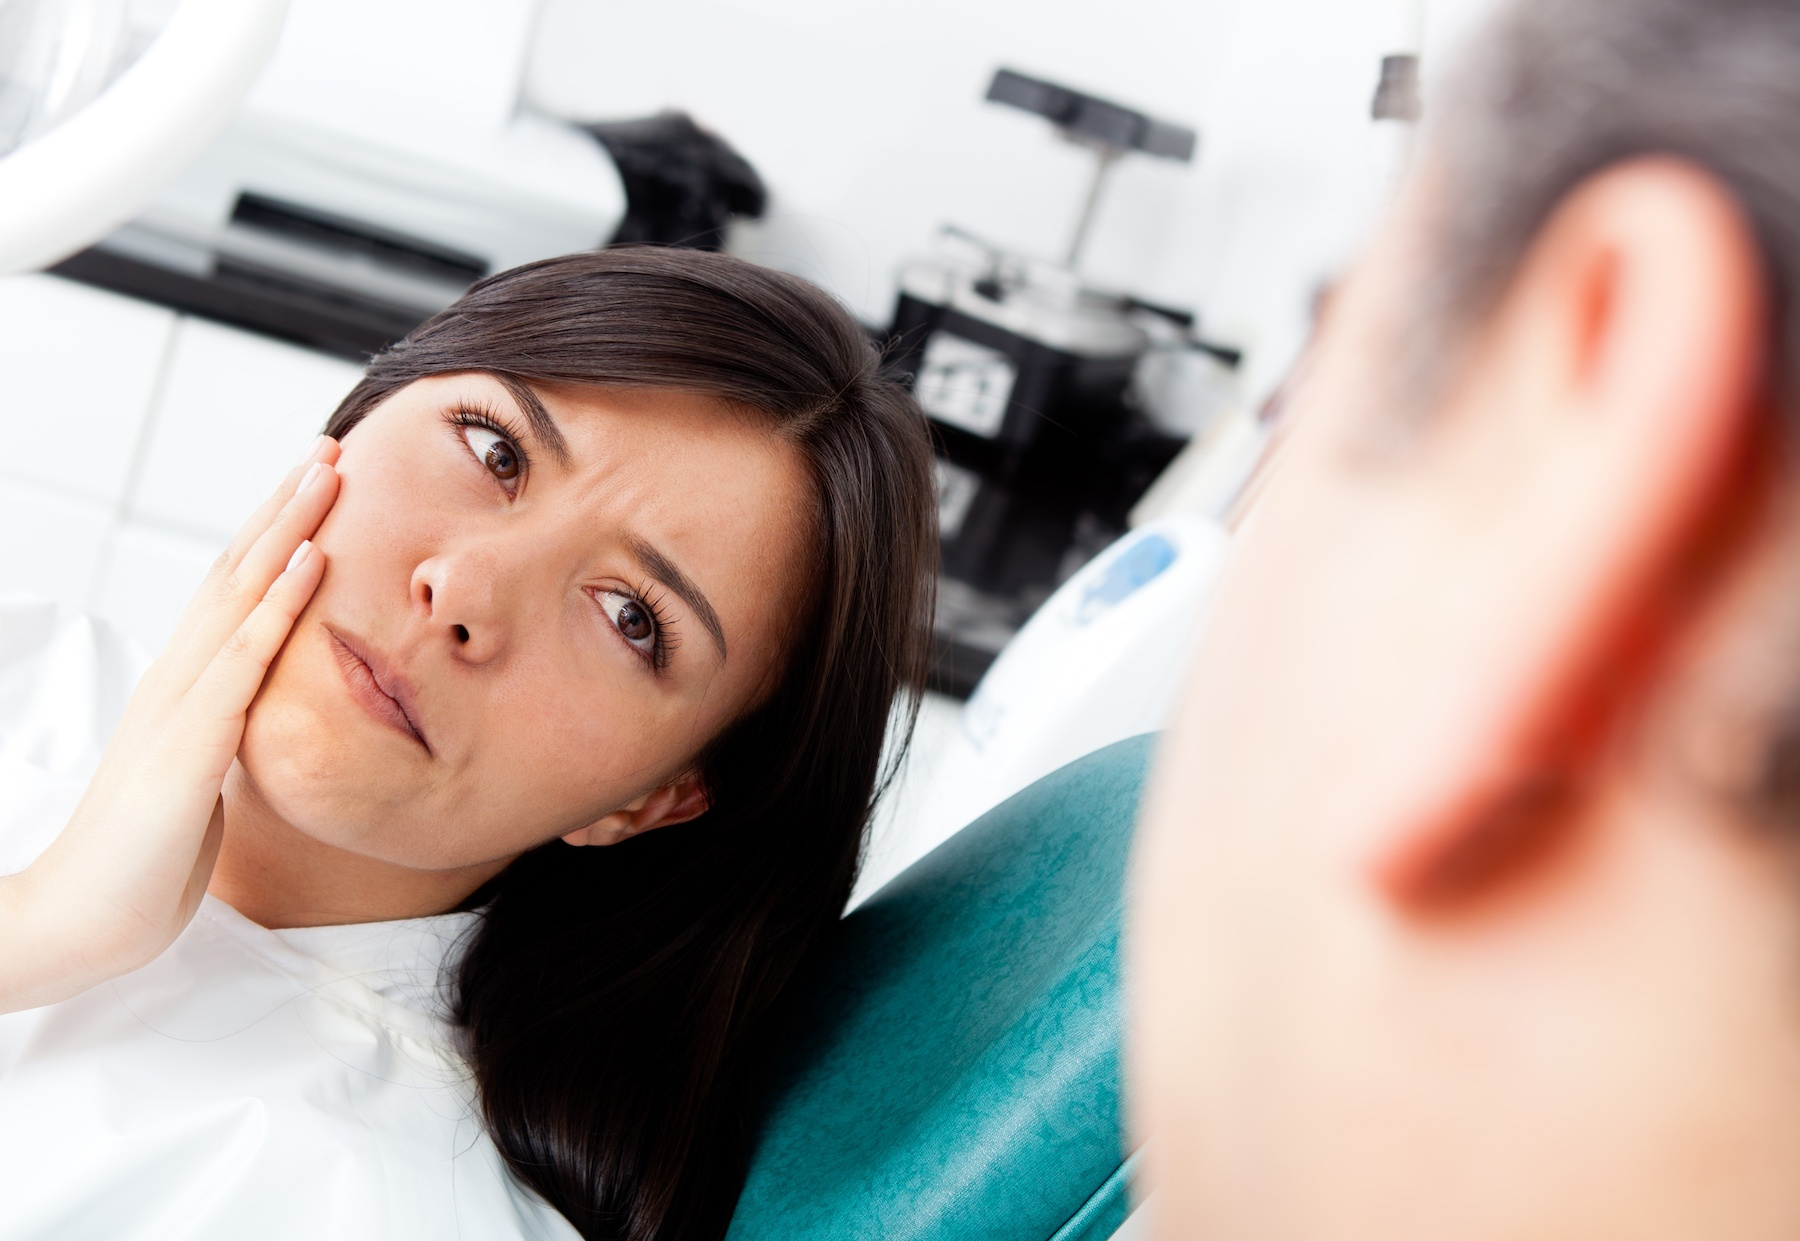 22Look-See22 Second OpinionConsultation | Samuels Dental Arts